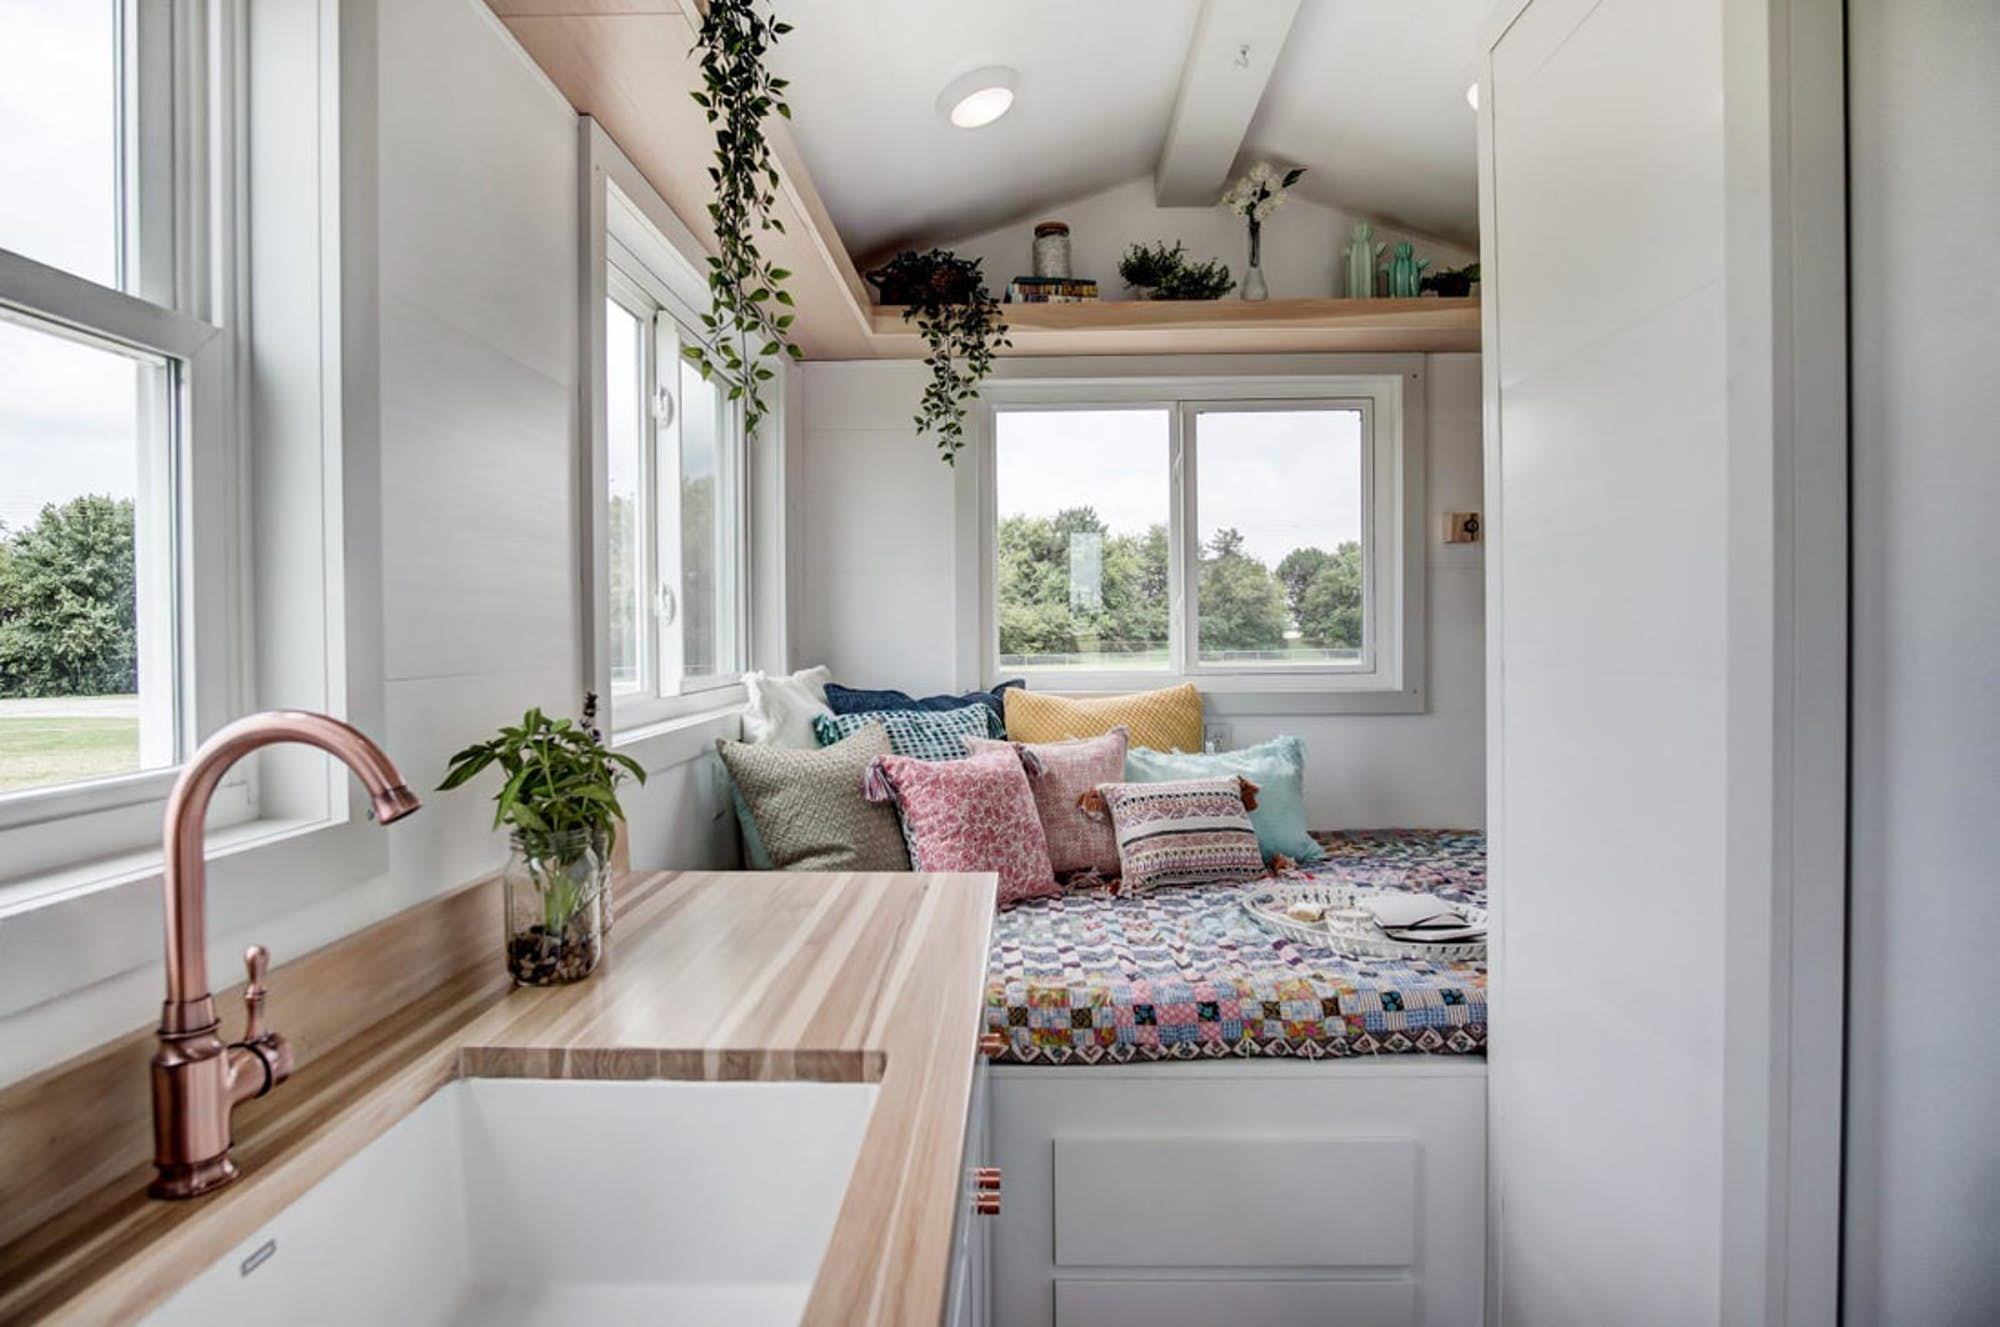 102 Square Foot Tiny House Modern Living